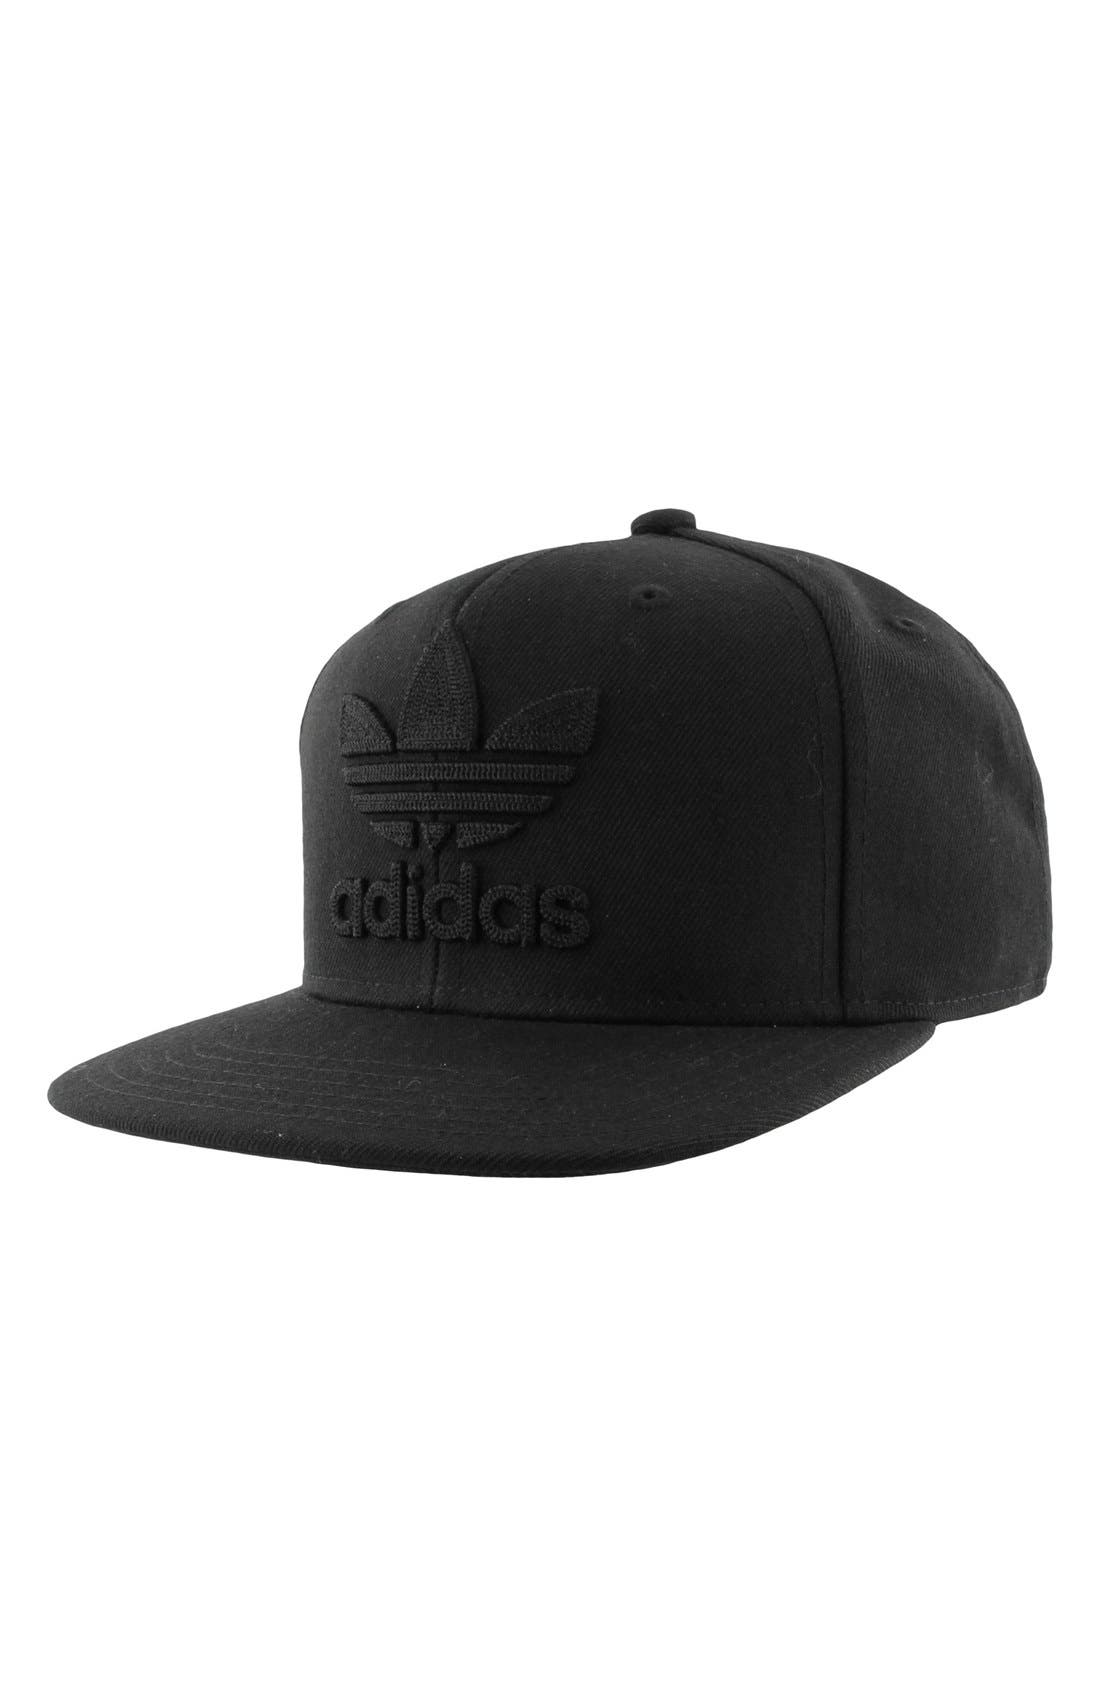 Alternate Image 1 Selected - adidas Originals 'Trefoil Chain' Snapback Cap